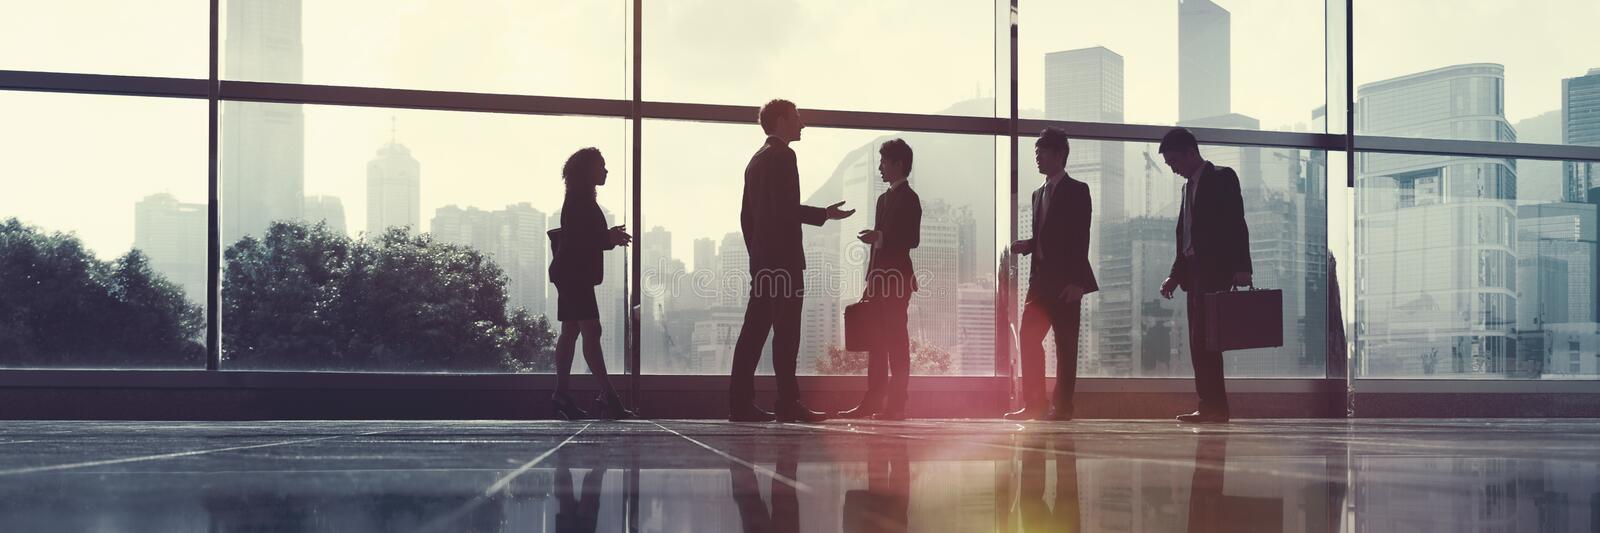 Business People Commuter Walking Office Concept.  royalty free stock image